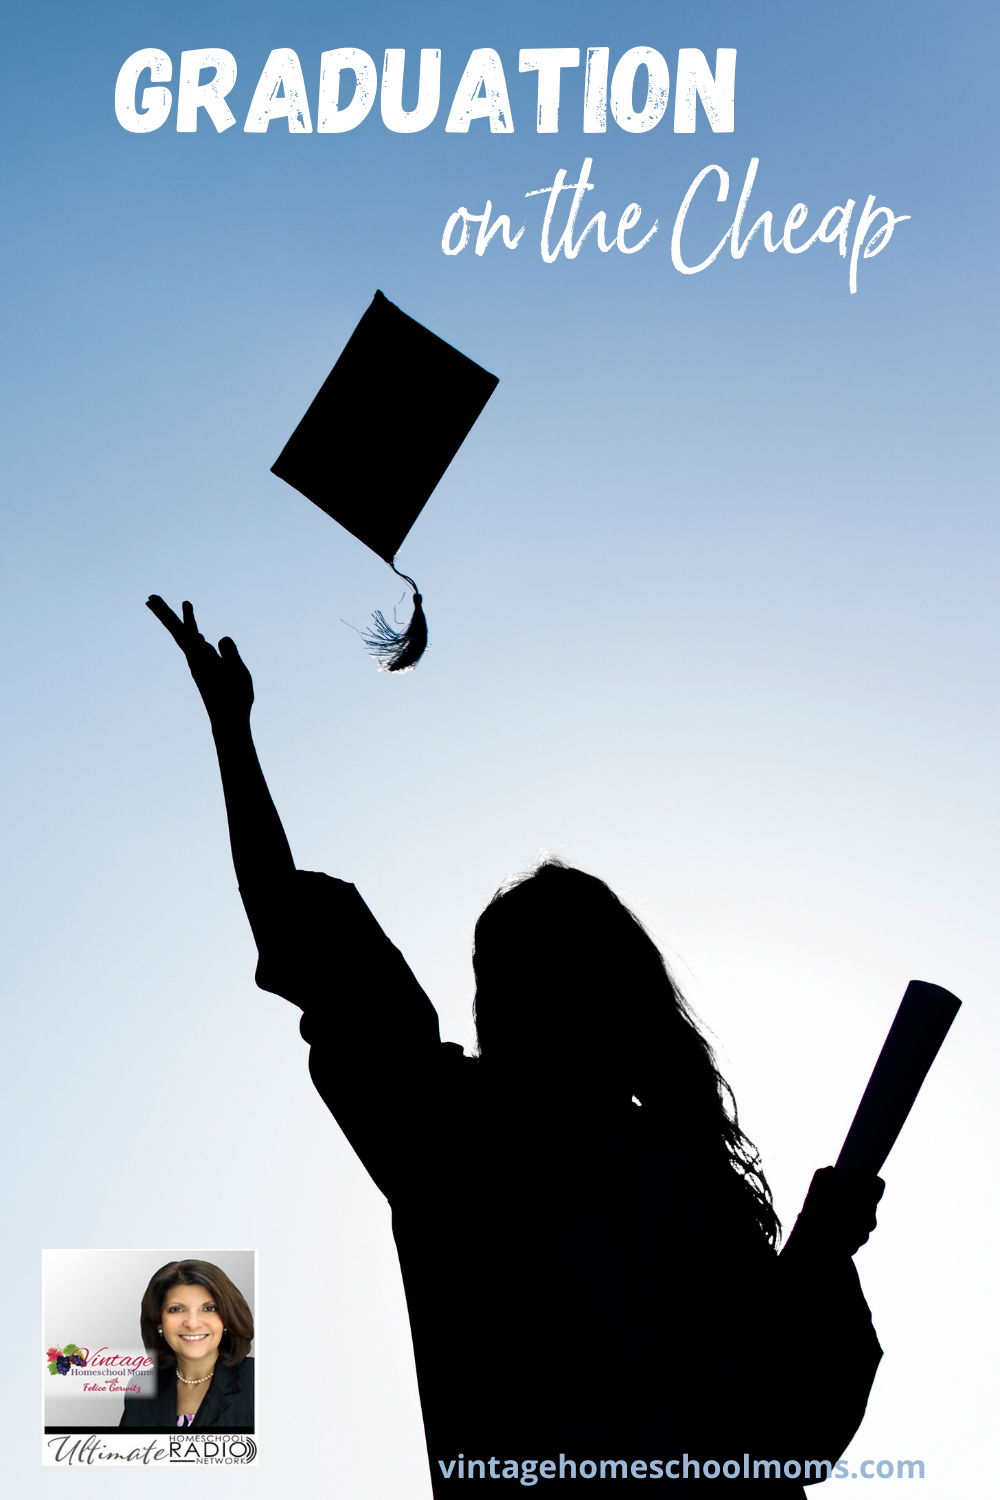 Inexpensive Graduation Ideas | Homeschooling families can benefit from frugal ideas for graduation | graduation on the cheap #podcast #homeschoolpodcast #graduationideas #inexpensivegraduationideas